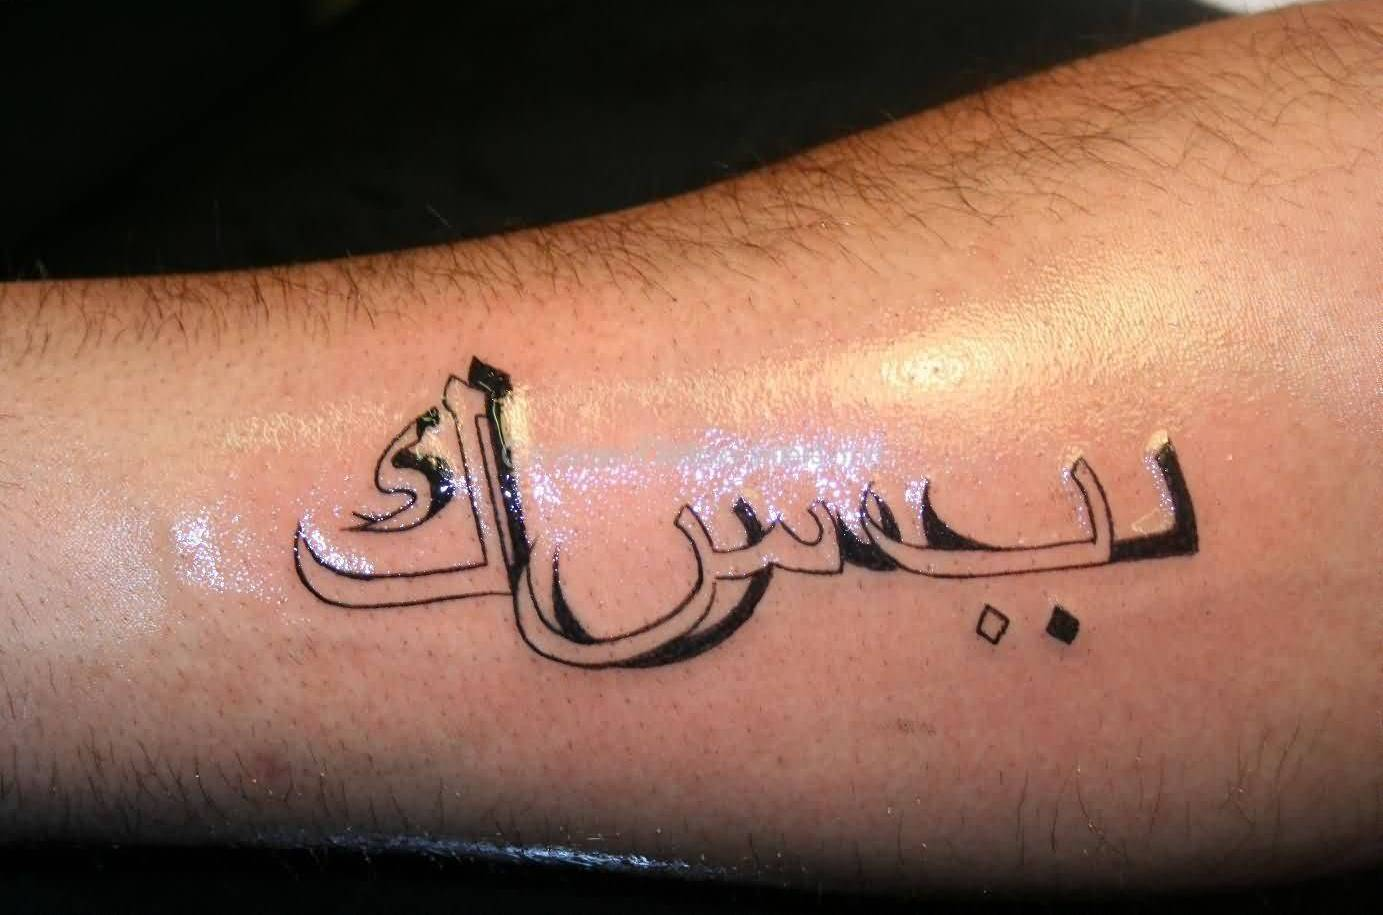 Amazing Arabic Font Tattoo For Men's Arm